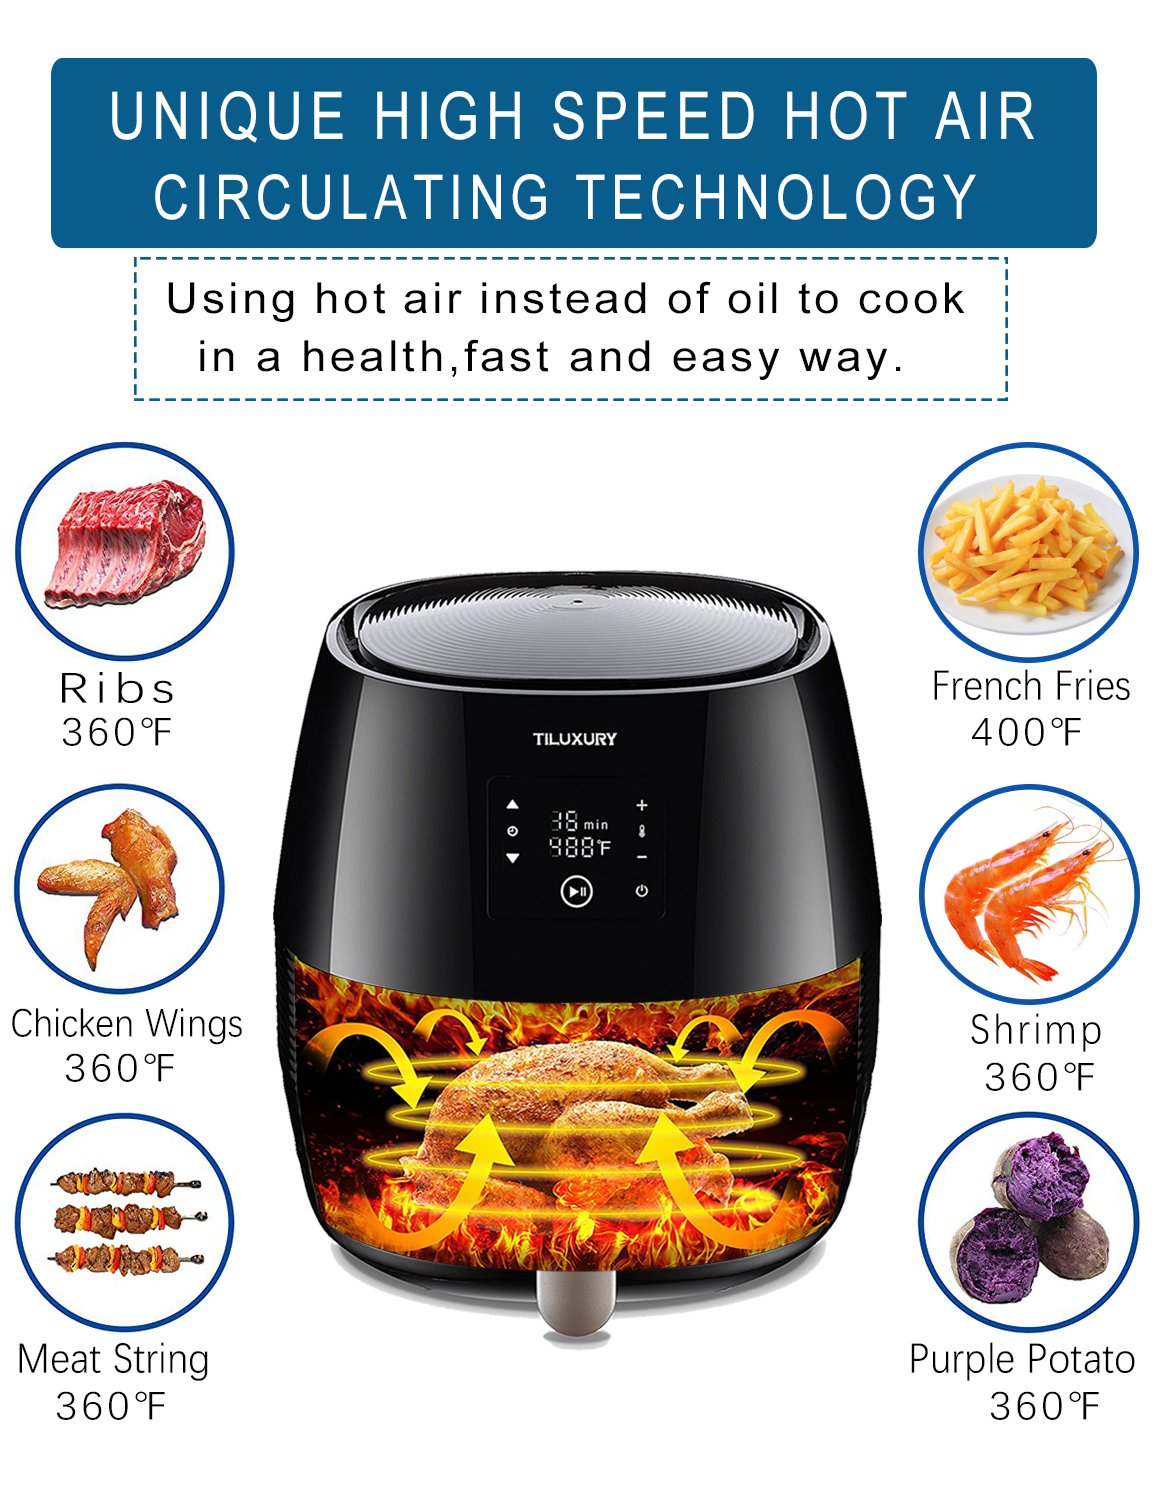 Tiluxury Air Fryer,Electric Air Fryers, Healthy Food Less Fat,Air French Fries,Hot Air Frying Technology Cooker,Digital Touch Screen and Non-Stick Basket,1400W 3.7QT (Black) by Tiluxury (Image #5)